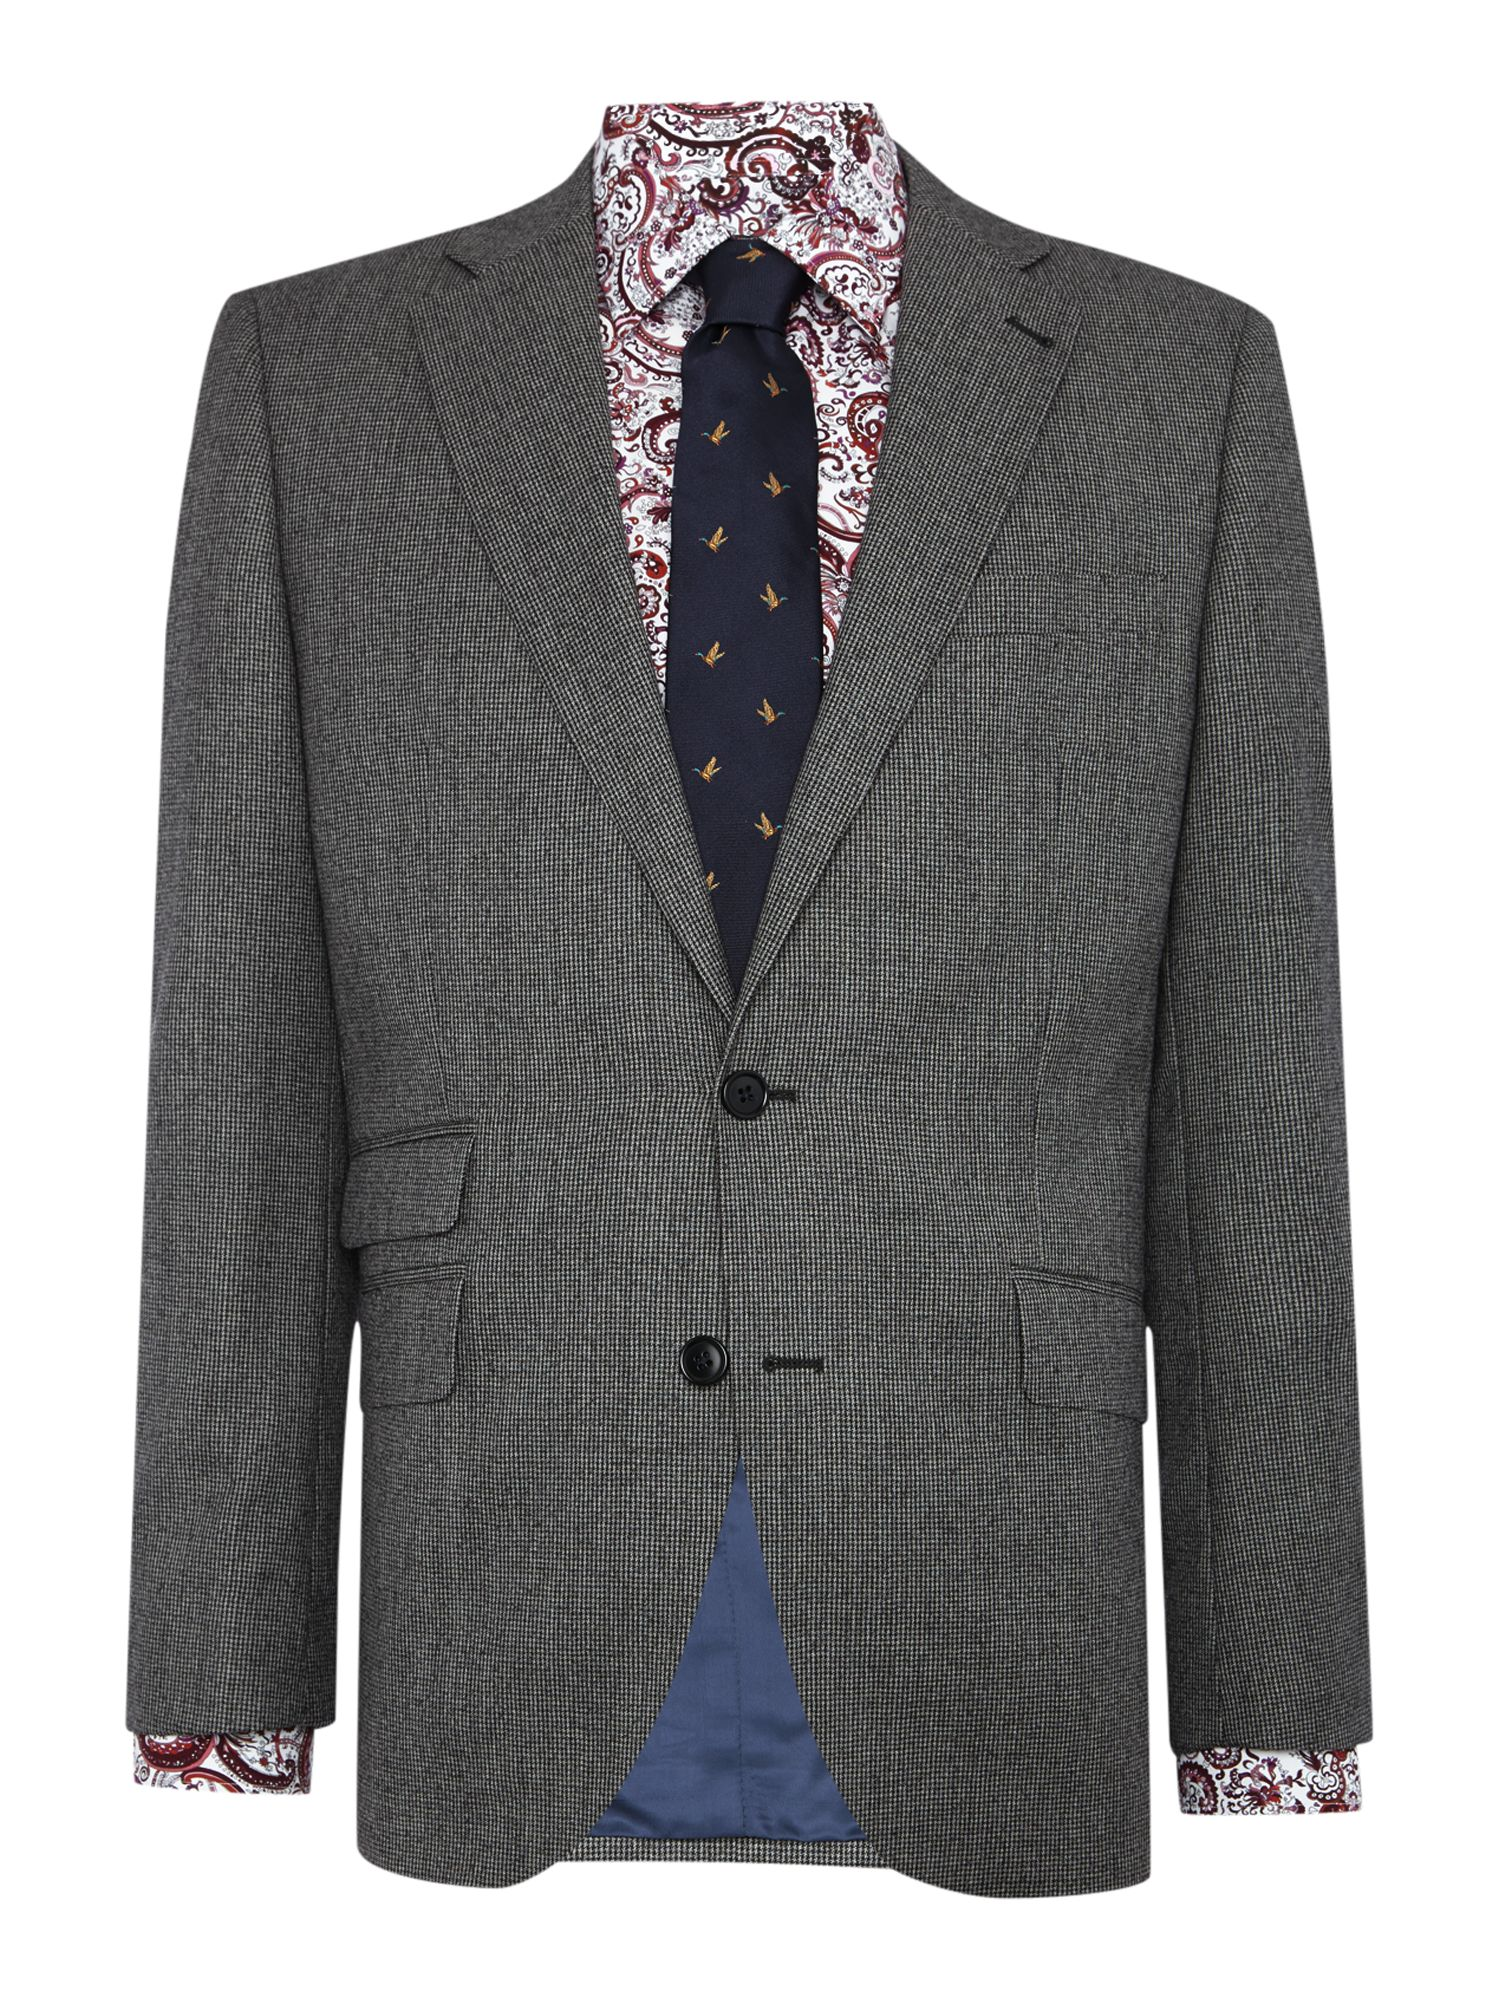 New & Lingwood Men's New & Lingwood Hollow Sb2 Dogtooth Suit Jacket, Grey